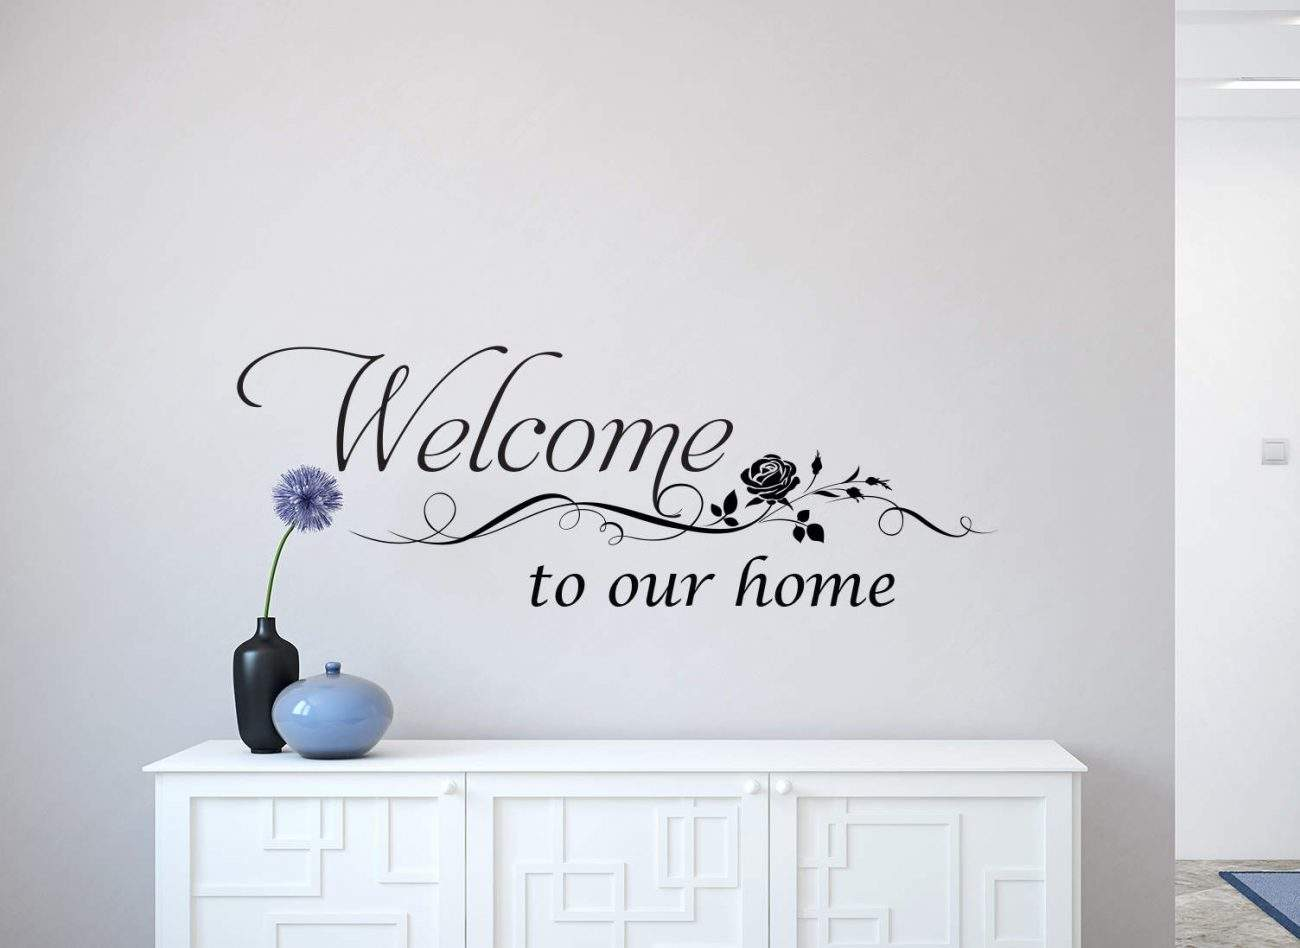 Welcome wall art decal